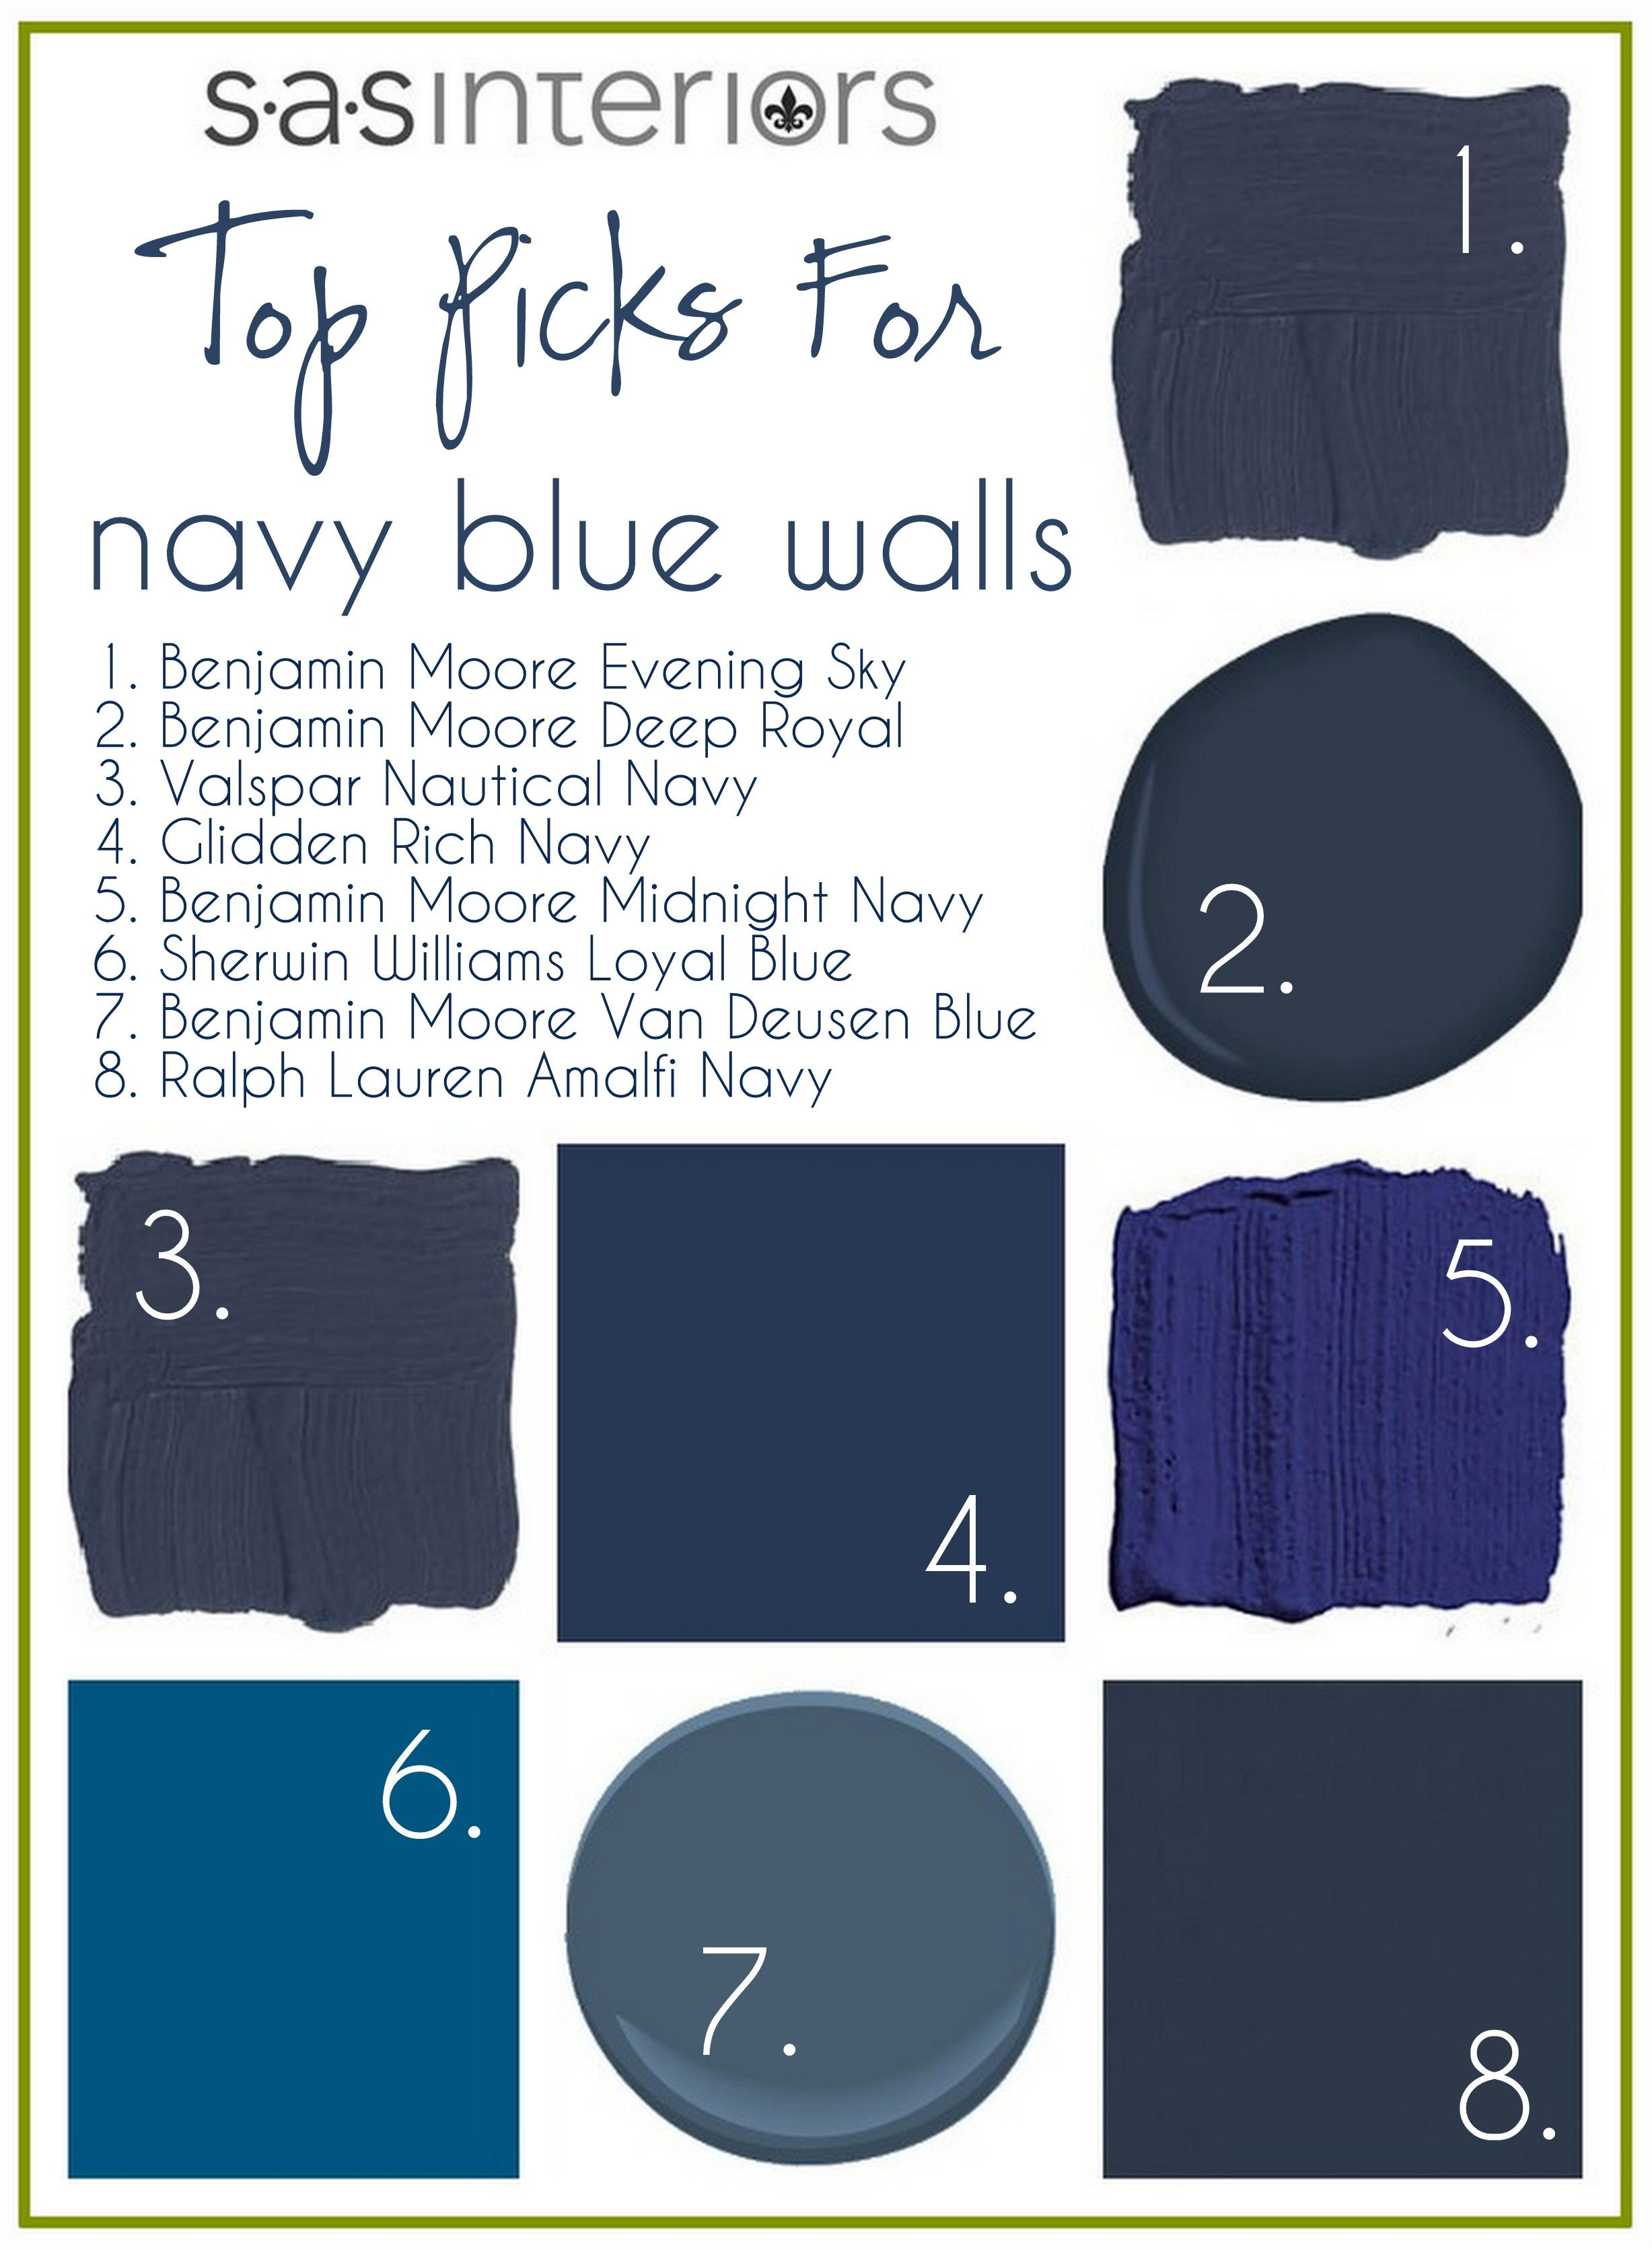 Navy blue bedroom colors - Read More Navy Blue Walls Paint Colors Navy Blue Walls Paint Colors I Intend To Repaint Something Among There Blues Navy Blue Paint Publicat